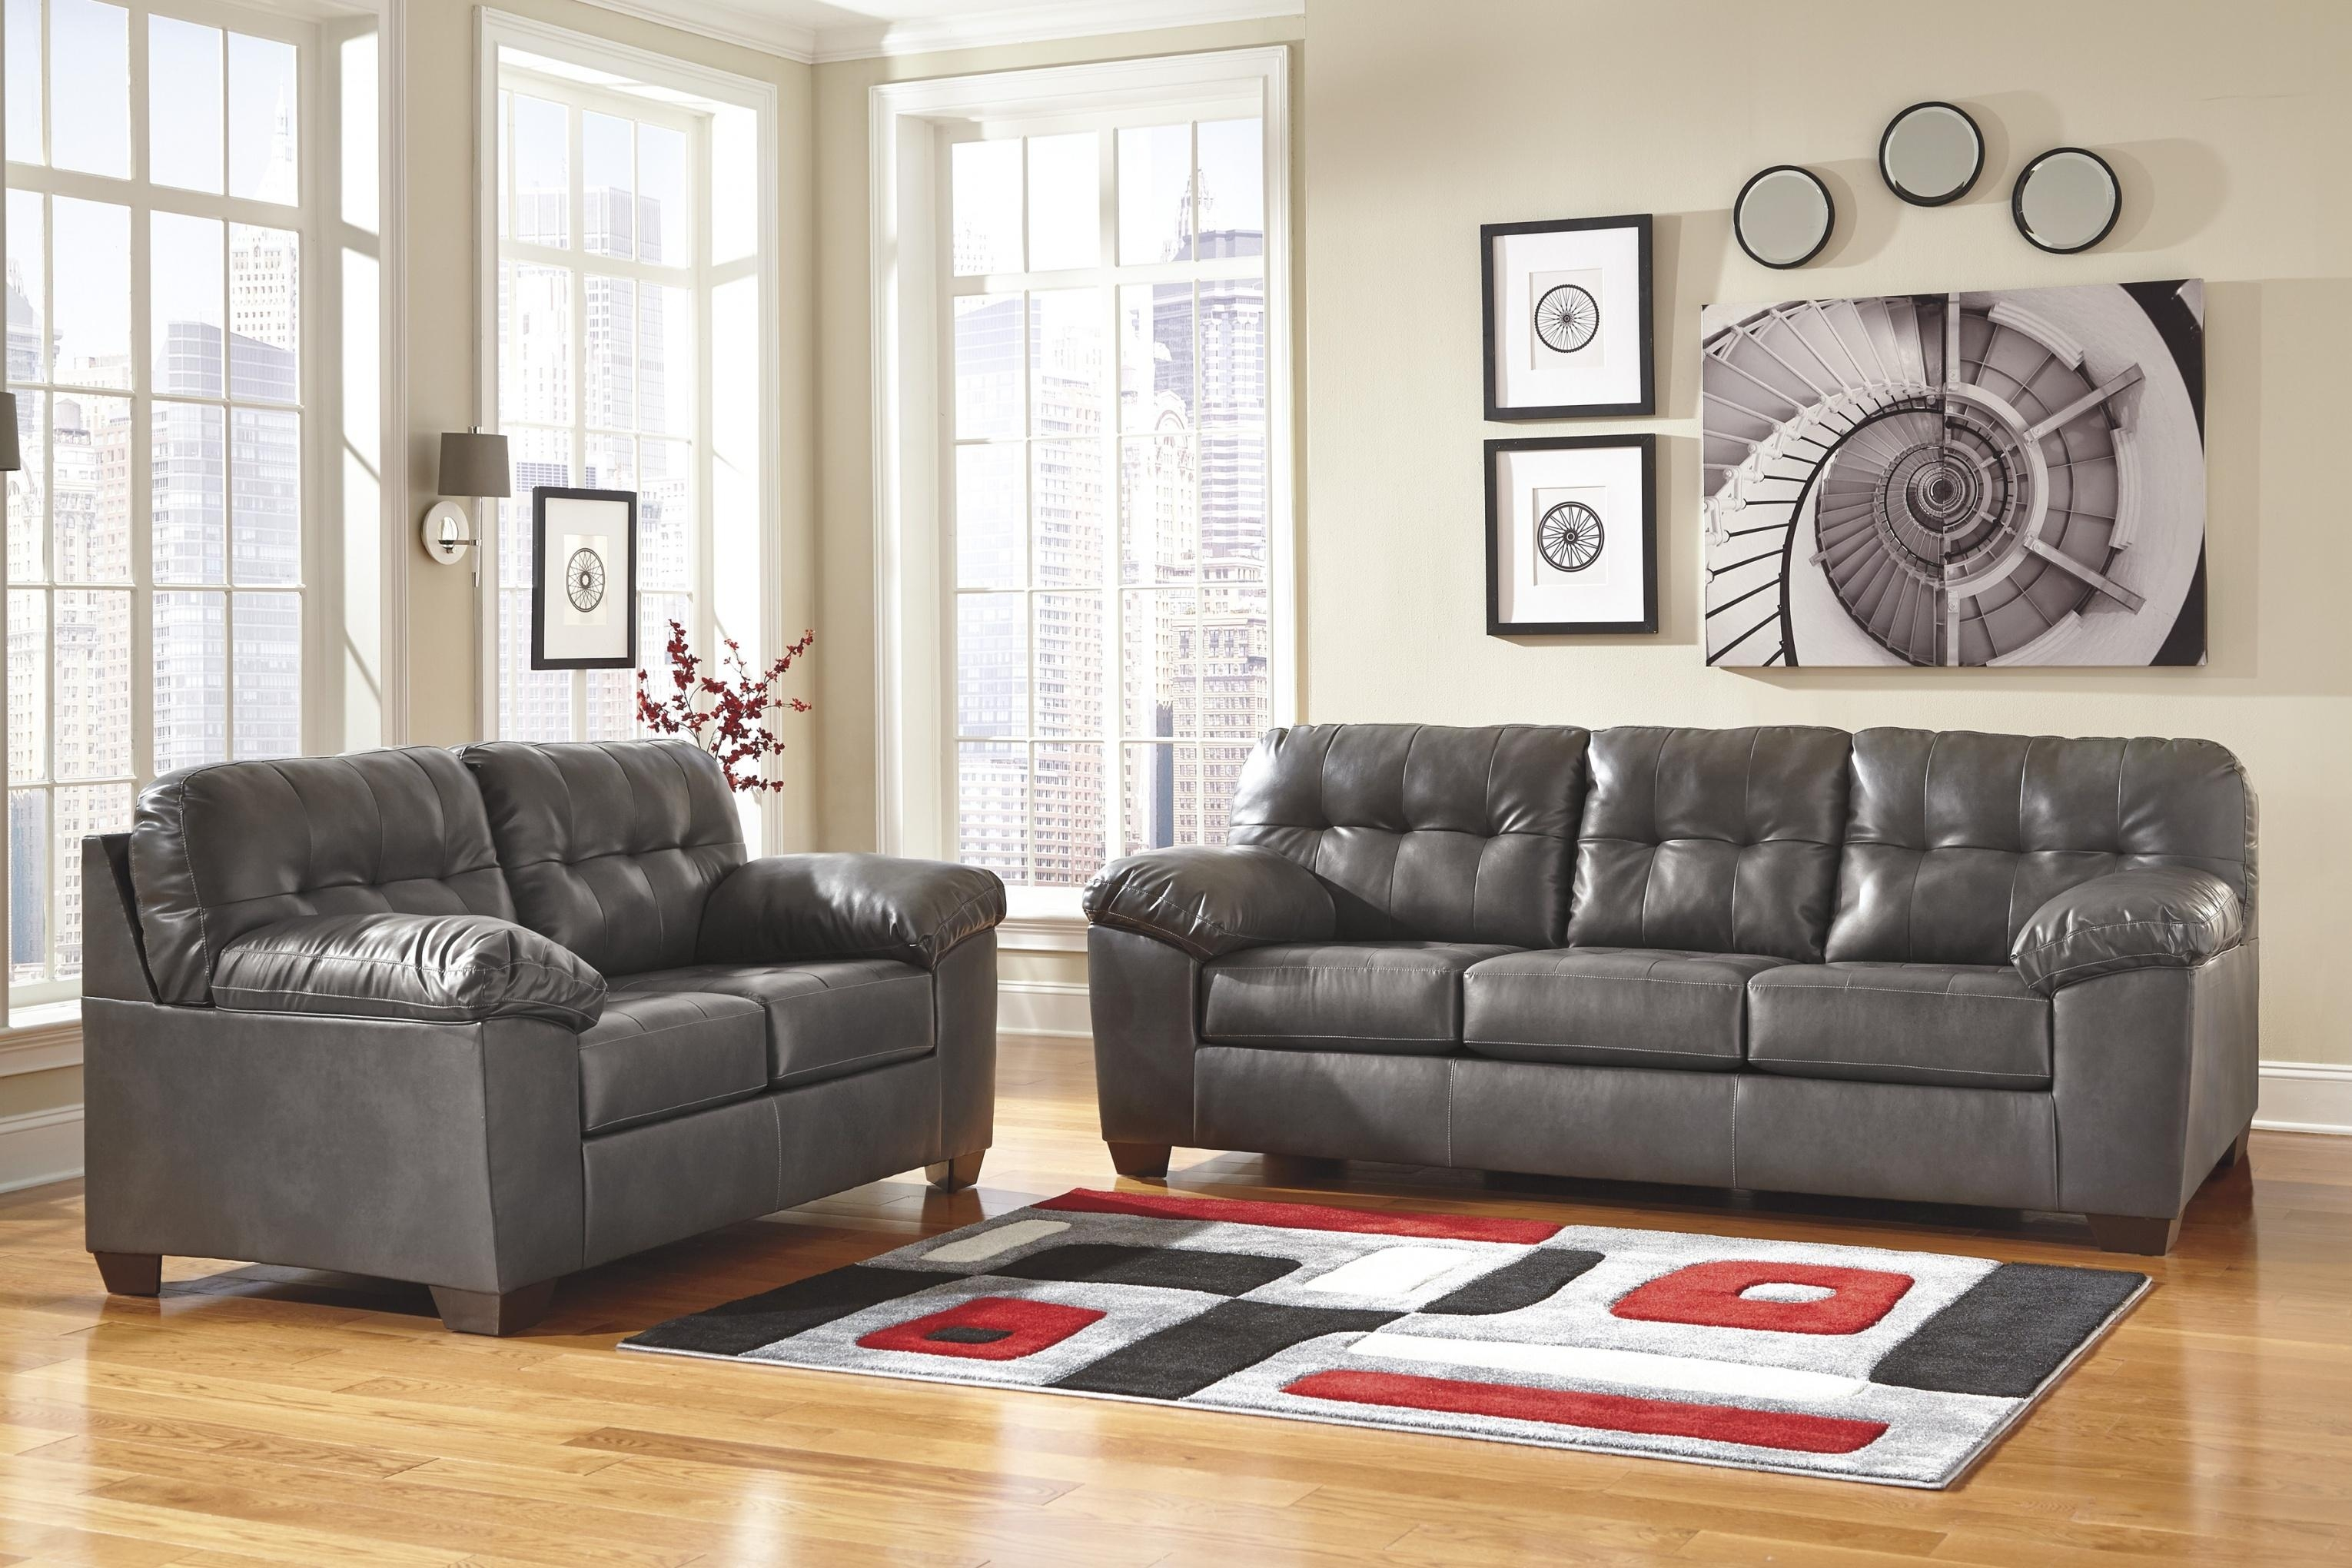 Gray Sectional Sofa Ashley Furniture – Elite Home Intended For Sectional Sofas Ashley Furniture (Image 9 of 20)